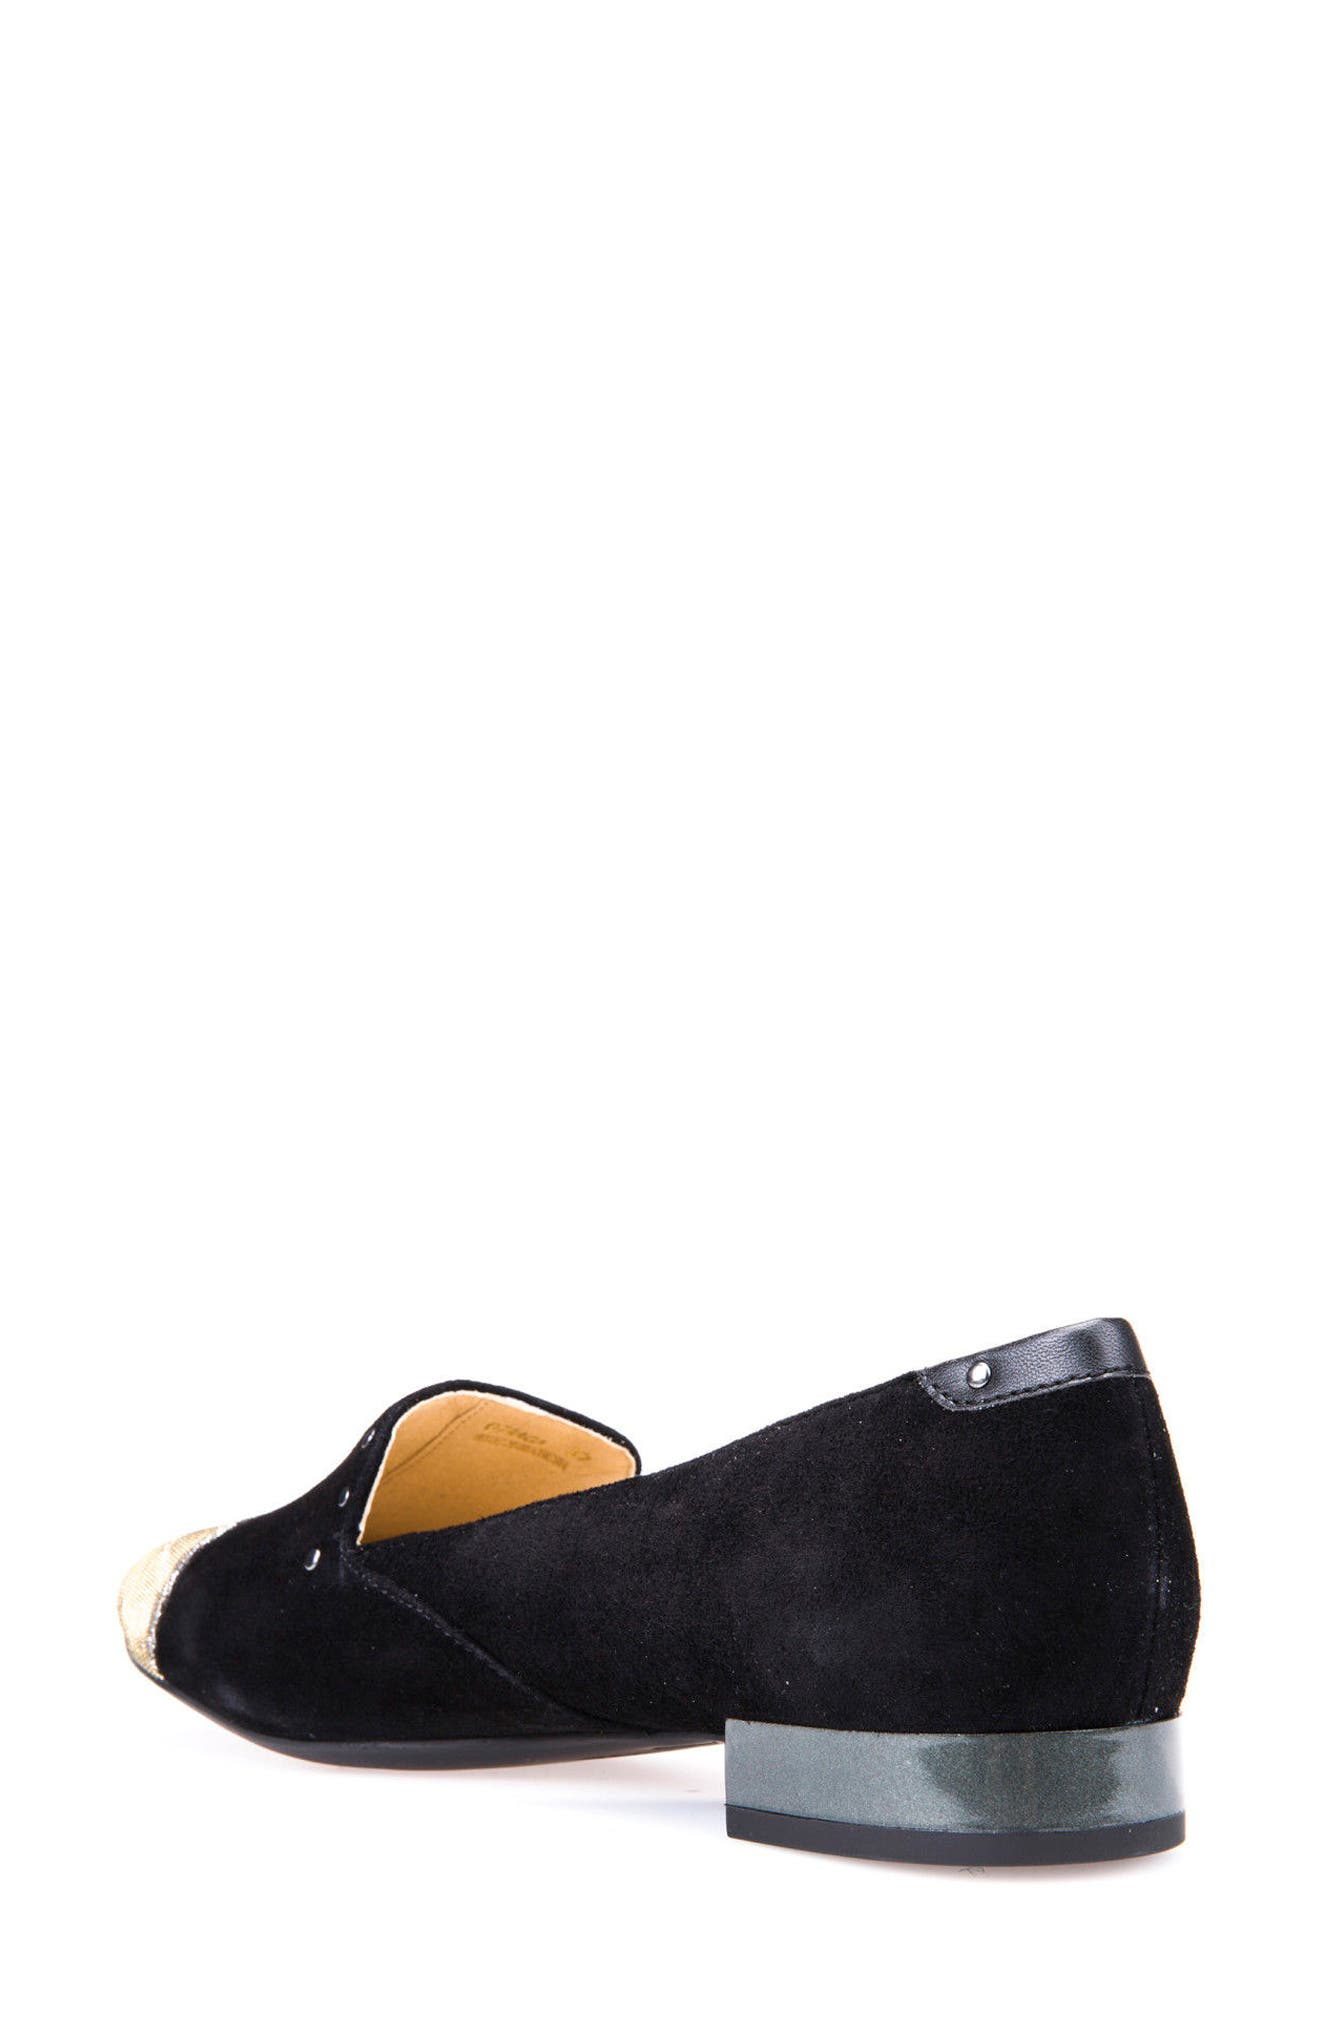 Wistrey Cap Toe Loafer,                             Alternate thumbnail 4, color,